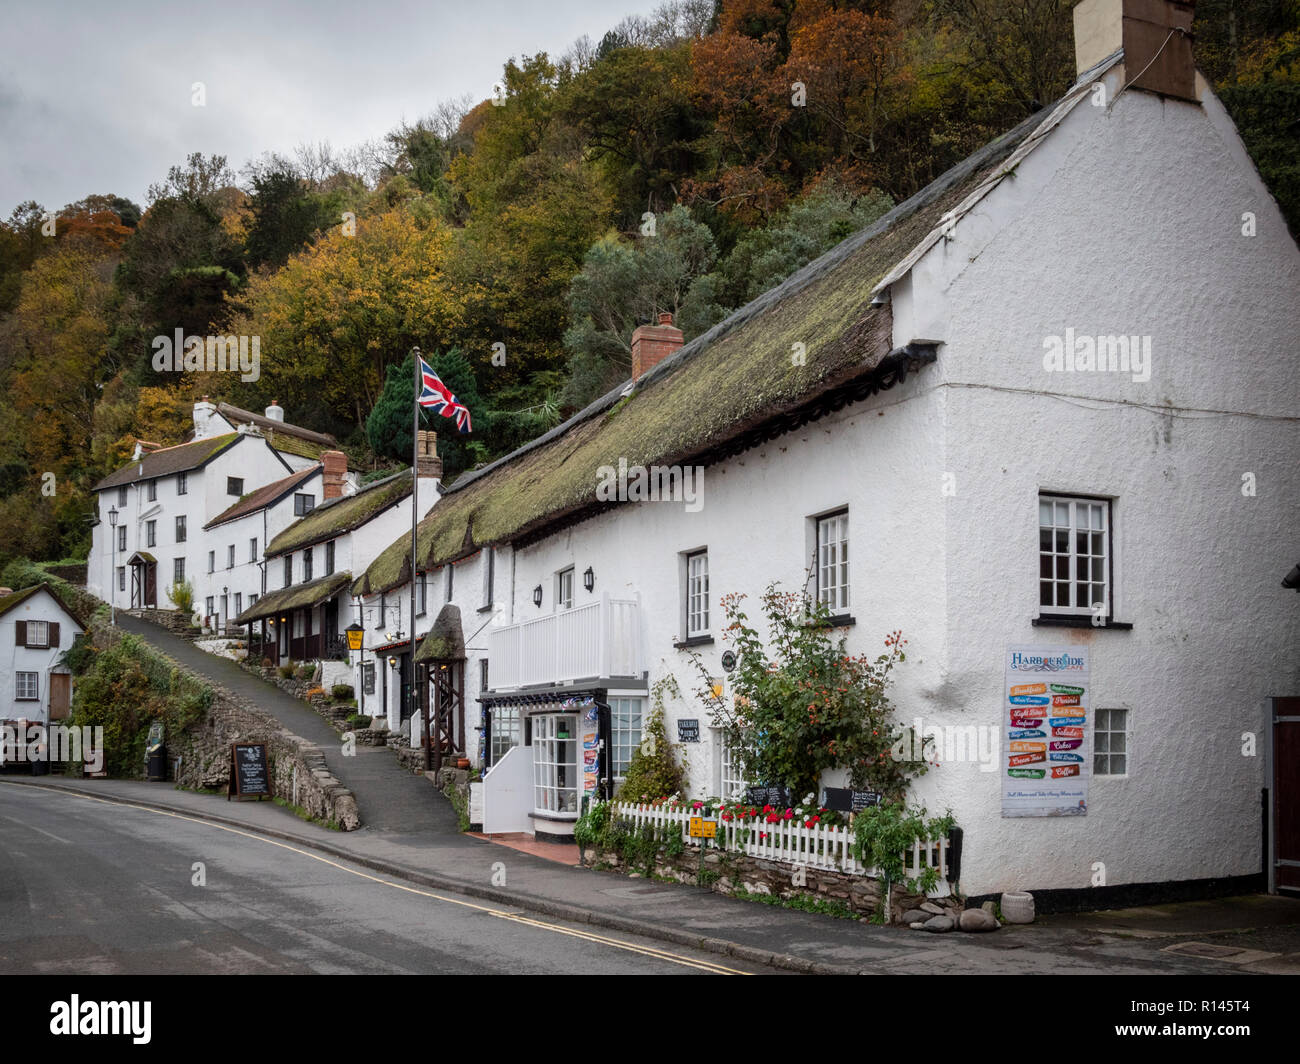 The Rising Sun 14t century pub and Inn at Lynmouth Devon, UK - Stock Image